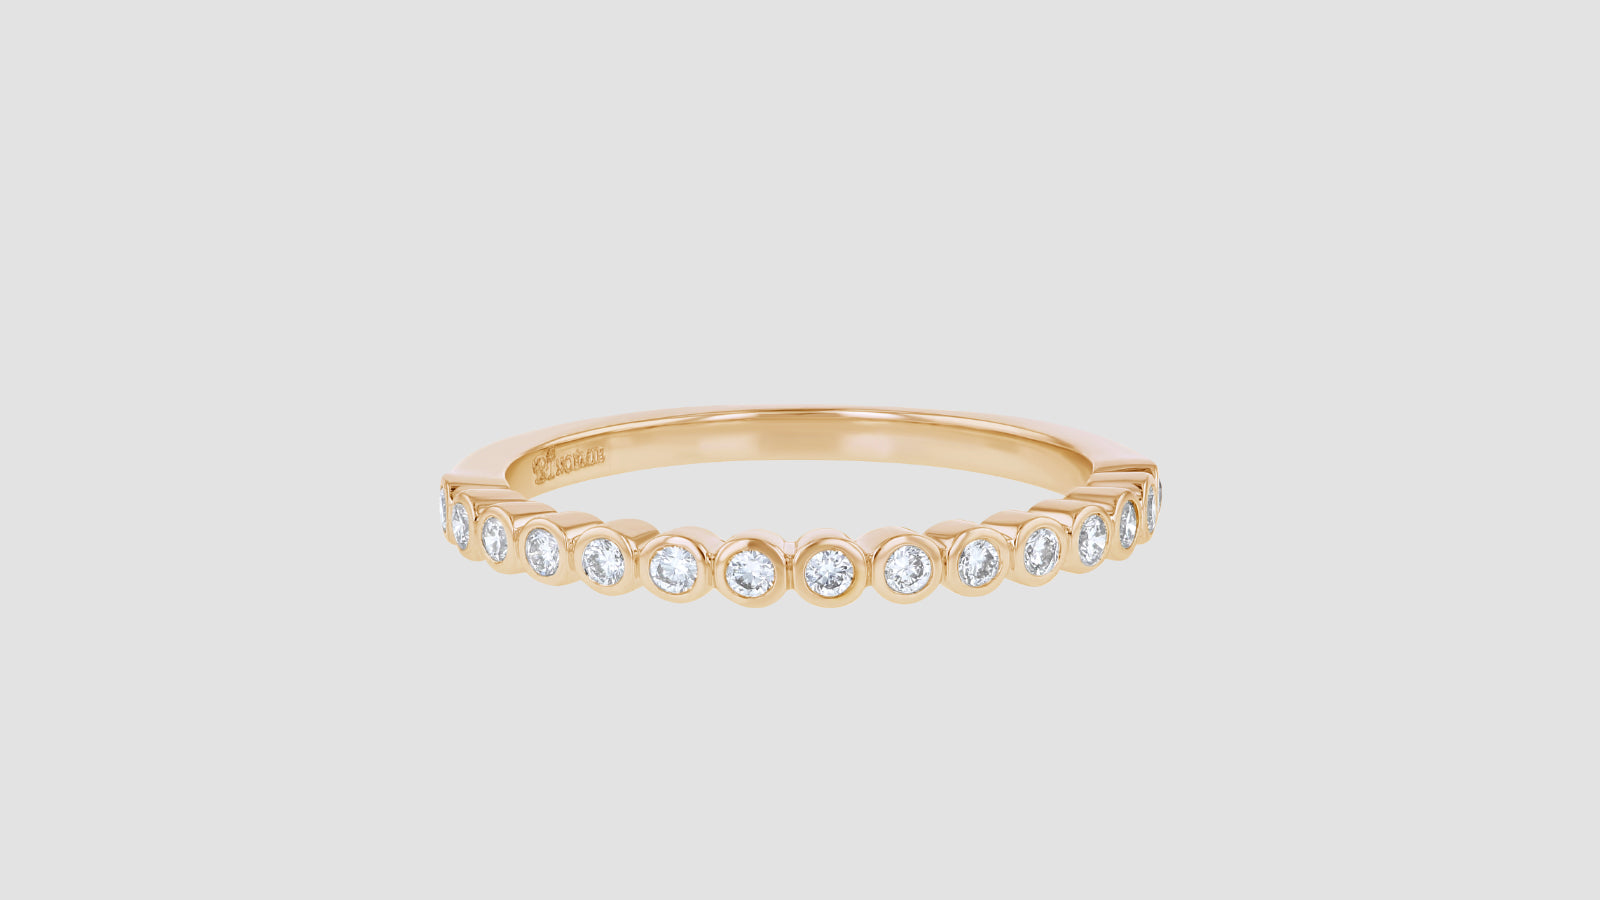 The Half Band Bezel Diamond Ring